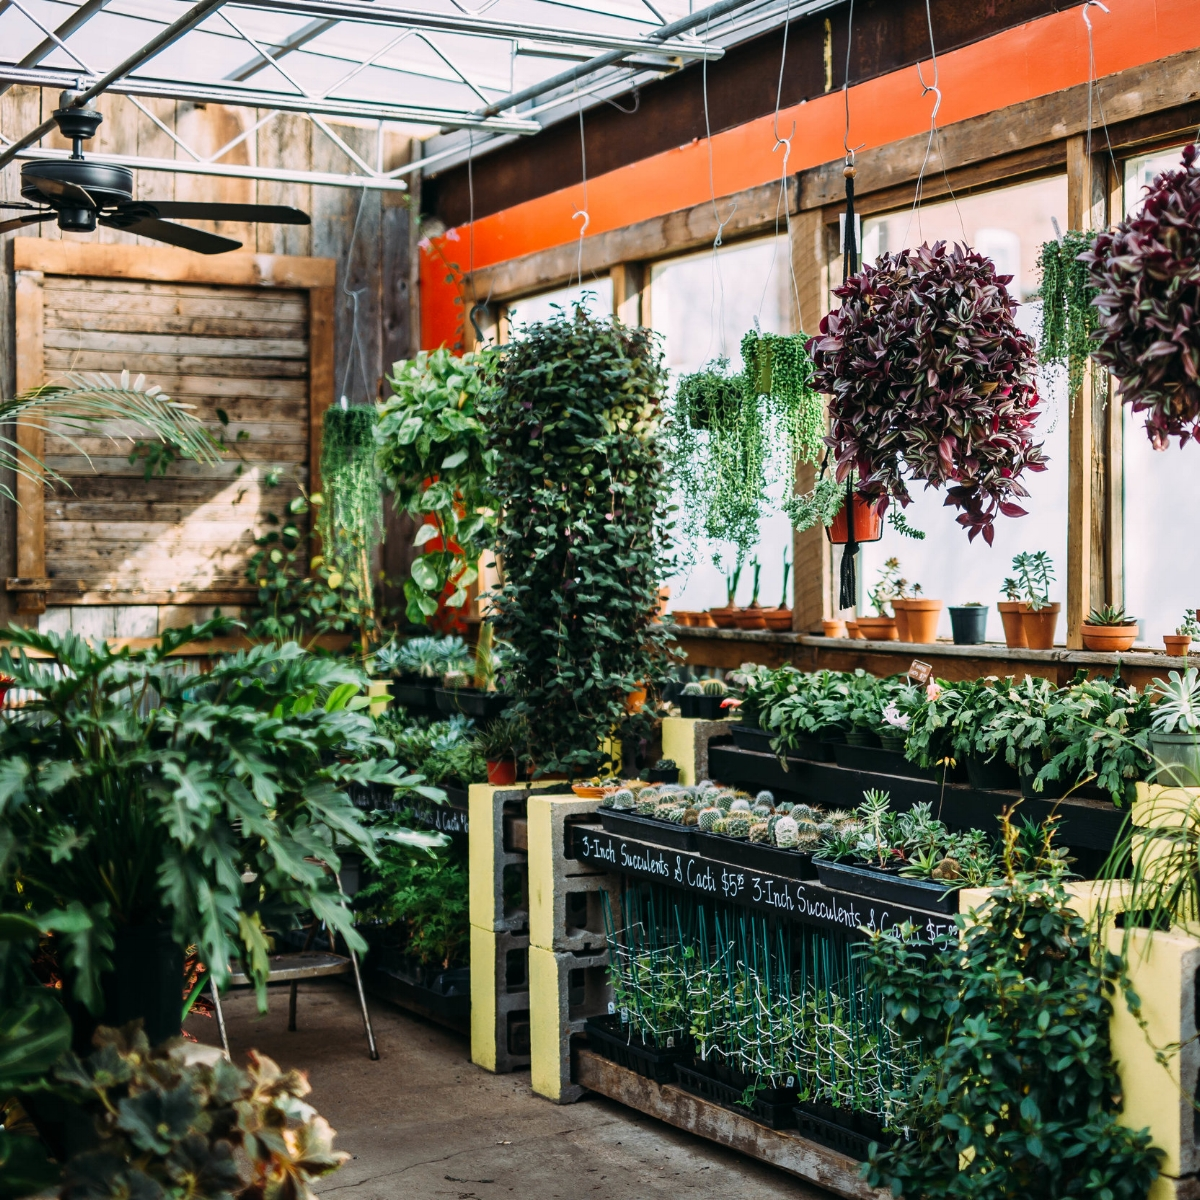 Photo by Cindy Lee